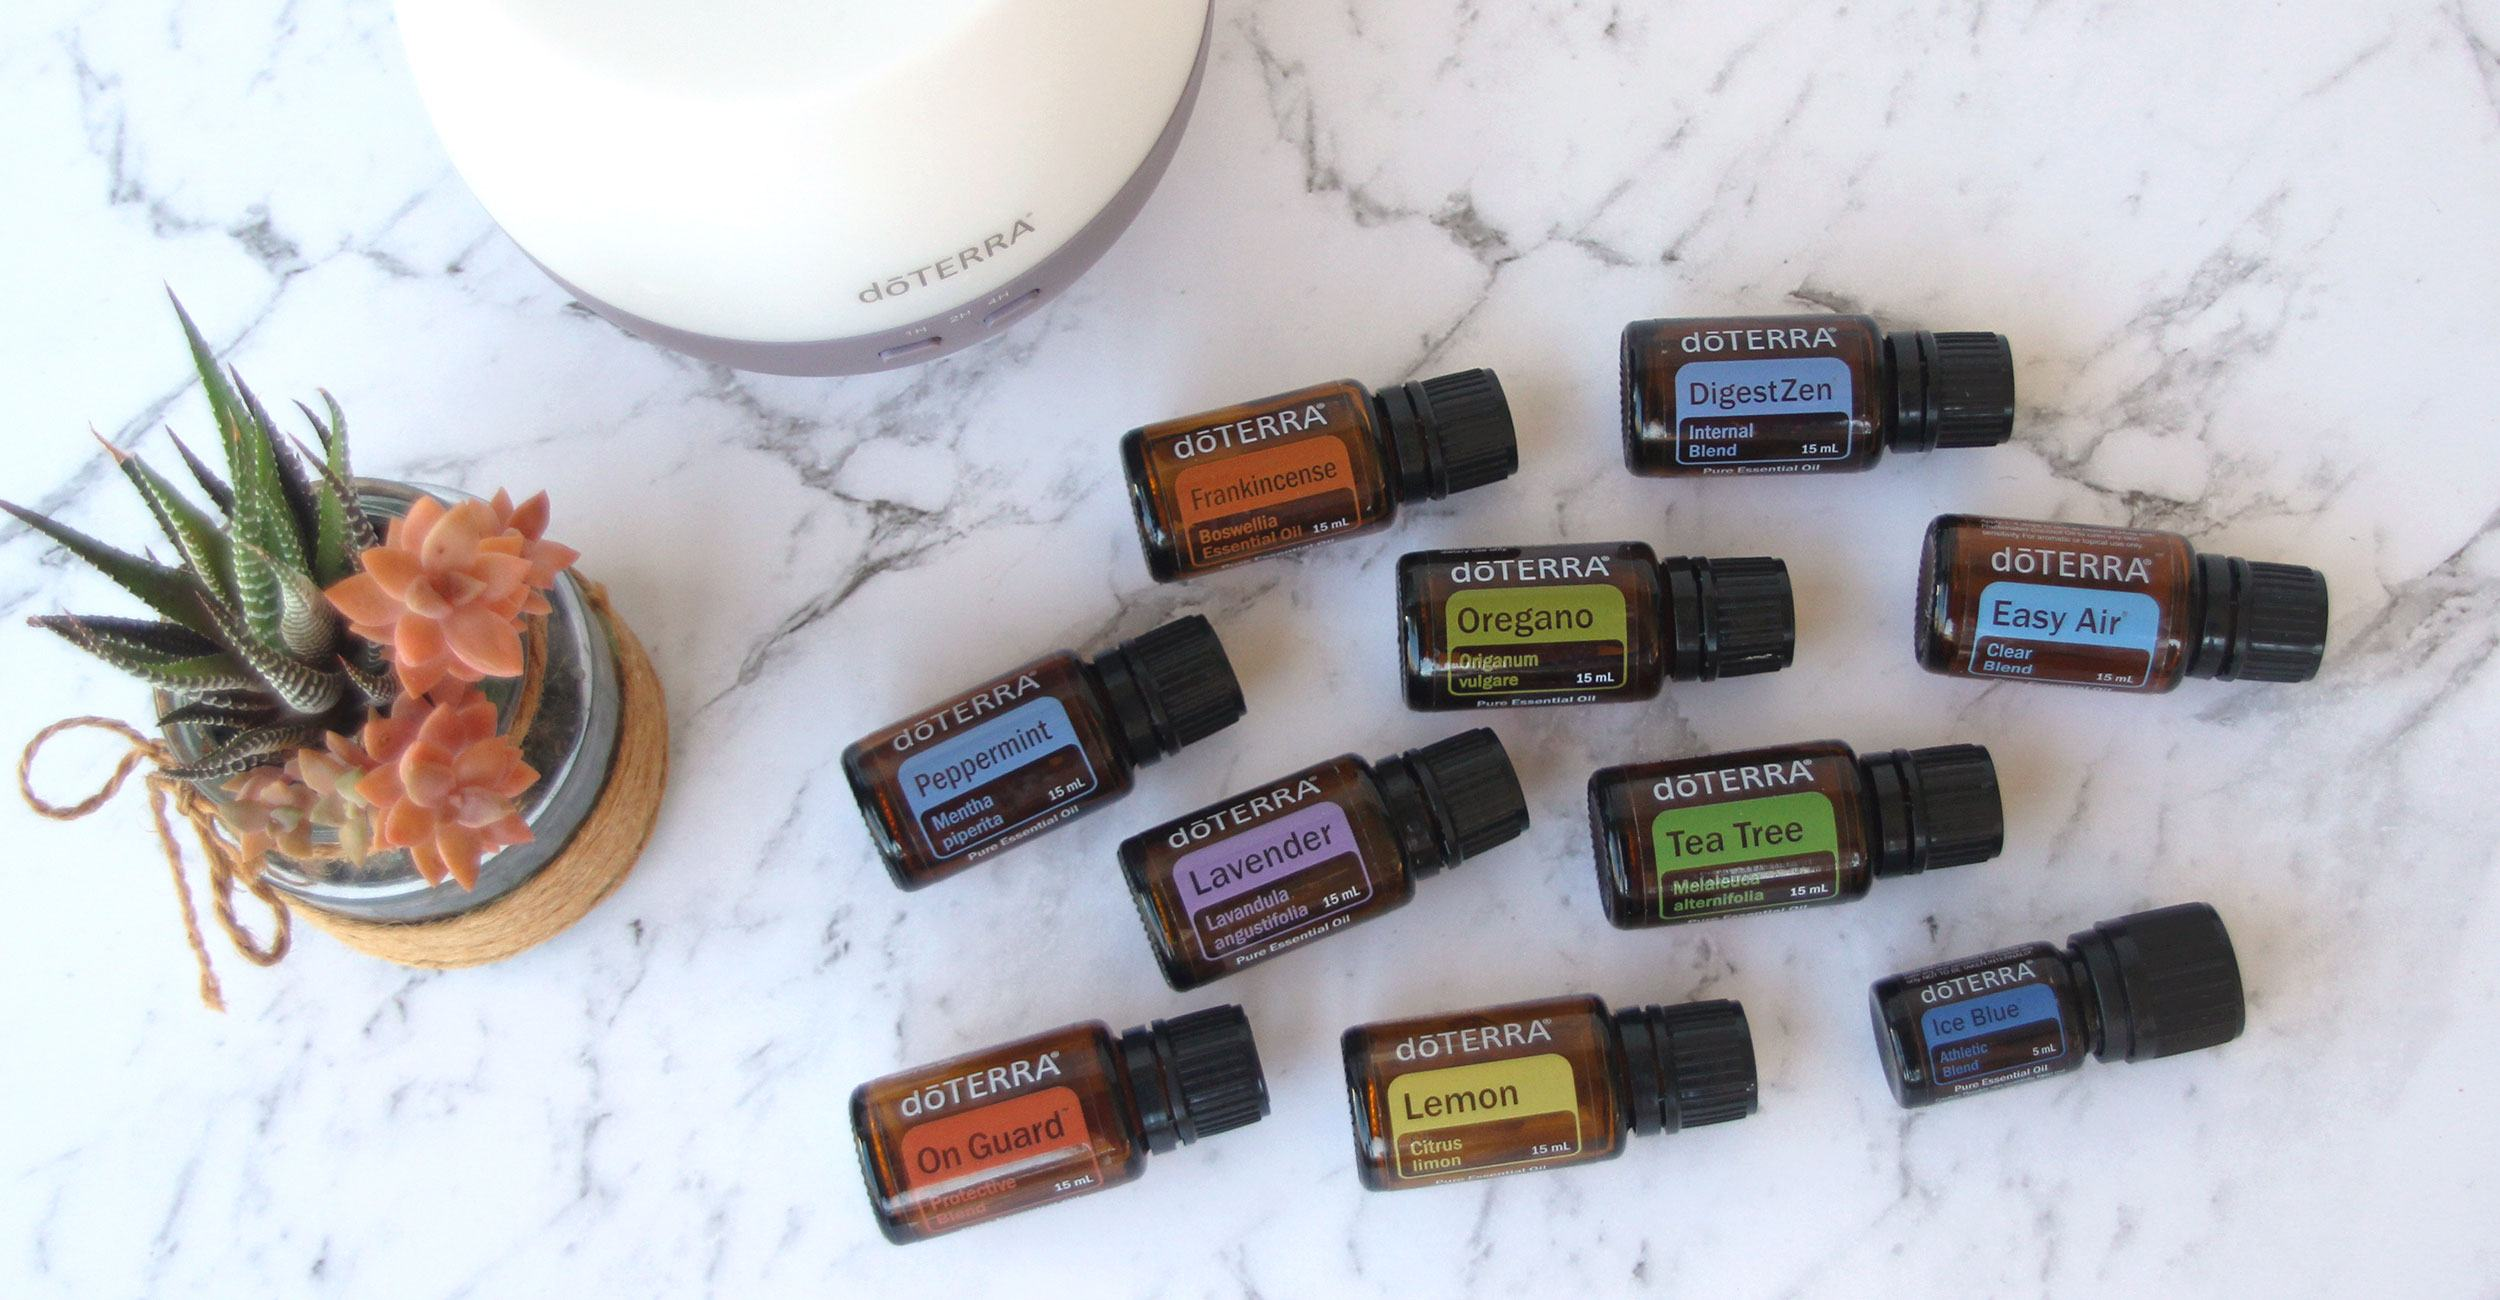 There are so many different essential oils to try that it can be hard to know which oils you should start with! You could start with scents that you already love, or make a selection from the top 10 essential oils which can be used to address most physical and emotional needs. Click through to find out about the benefits of the top 10 dōTERRA essentail oils and how they can be used to get started ! www.puredropessentials.com